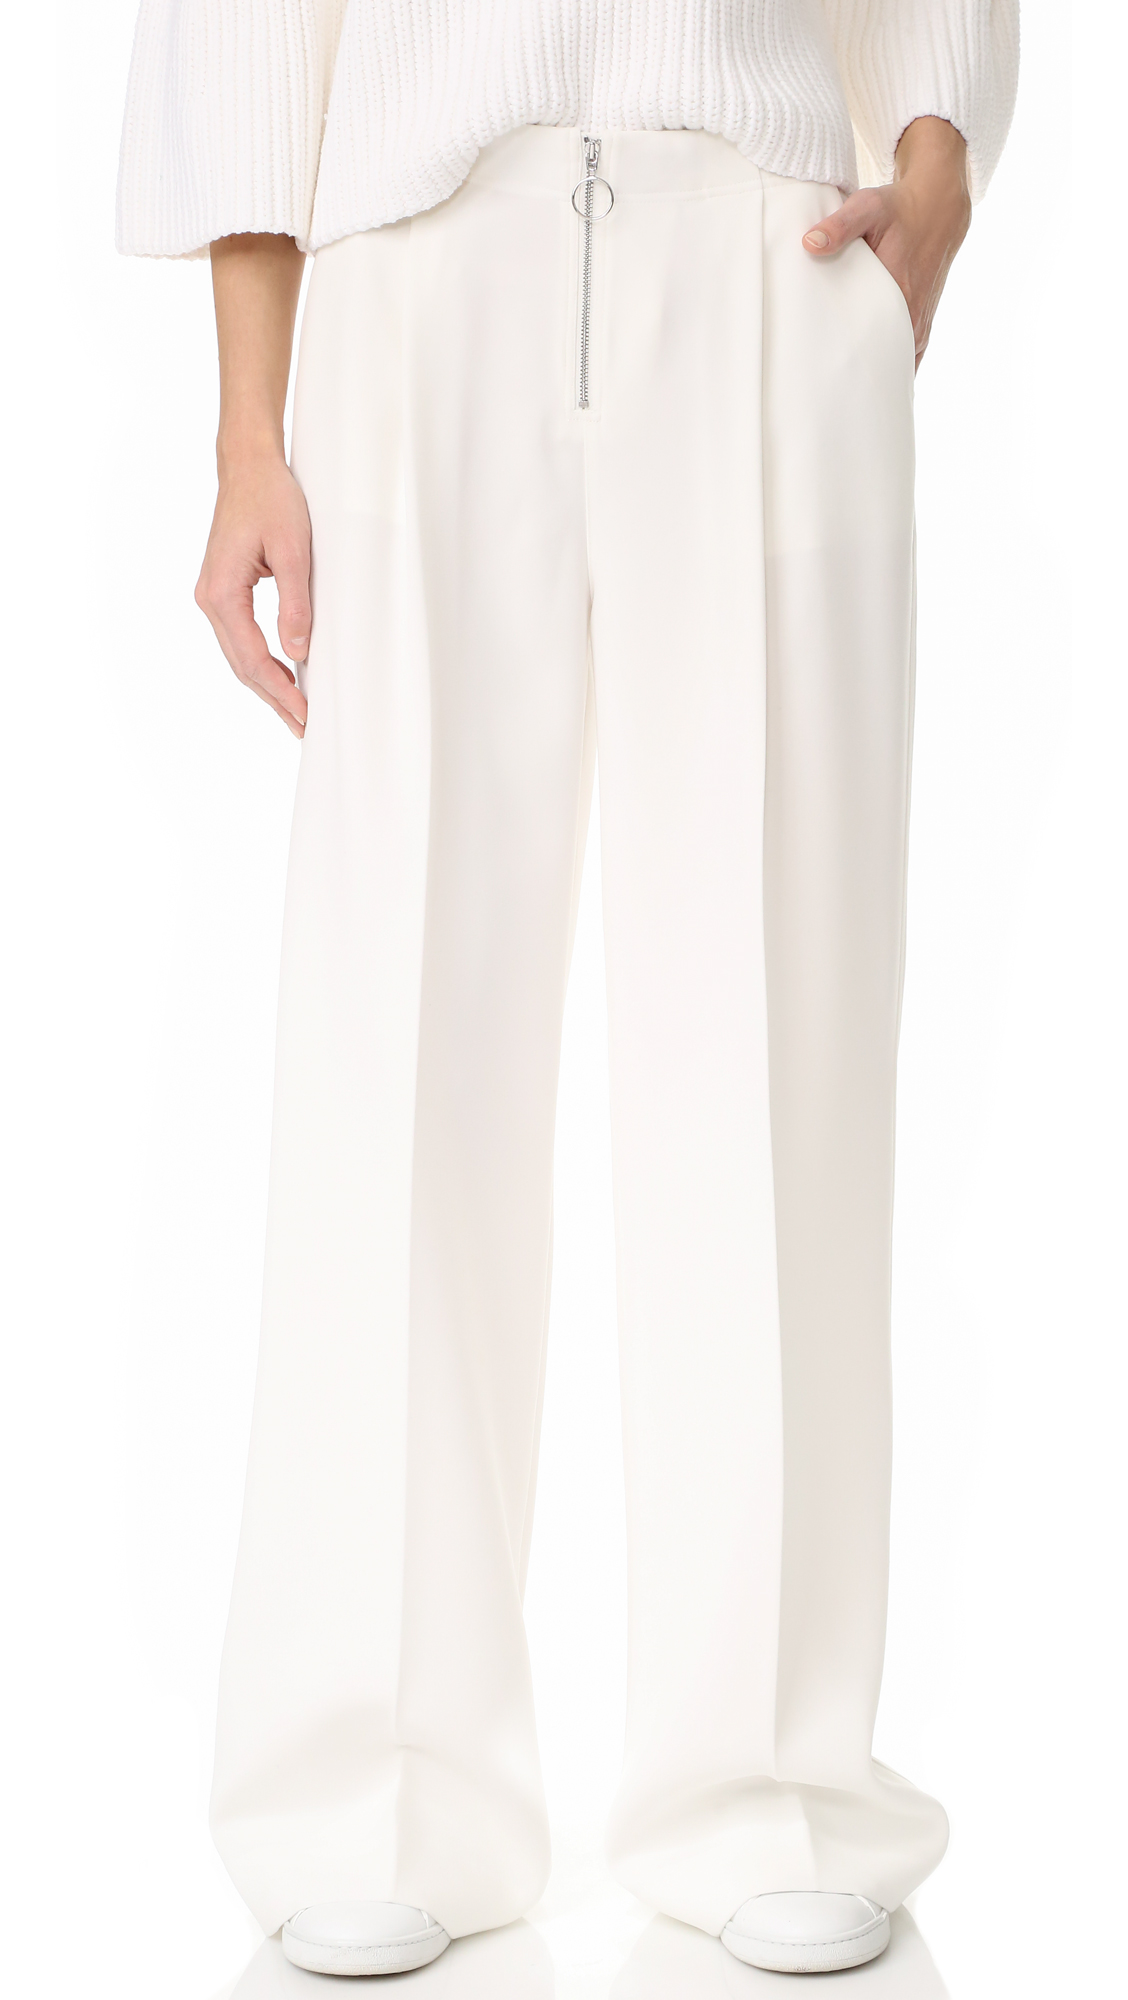 Sophisticated Elizabeth and James pants in a high waisted, wide leg profile. Slant front pockets and welt back pockets. Exposed front zip with ring pull. Fabric: Crepe. Shell: 51% polyester/49% acetate. Lining: 94% polyester/6% spandex. Dry clean. Imported,